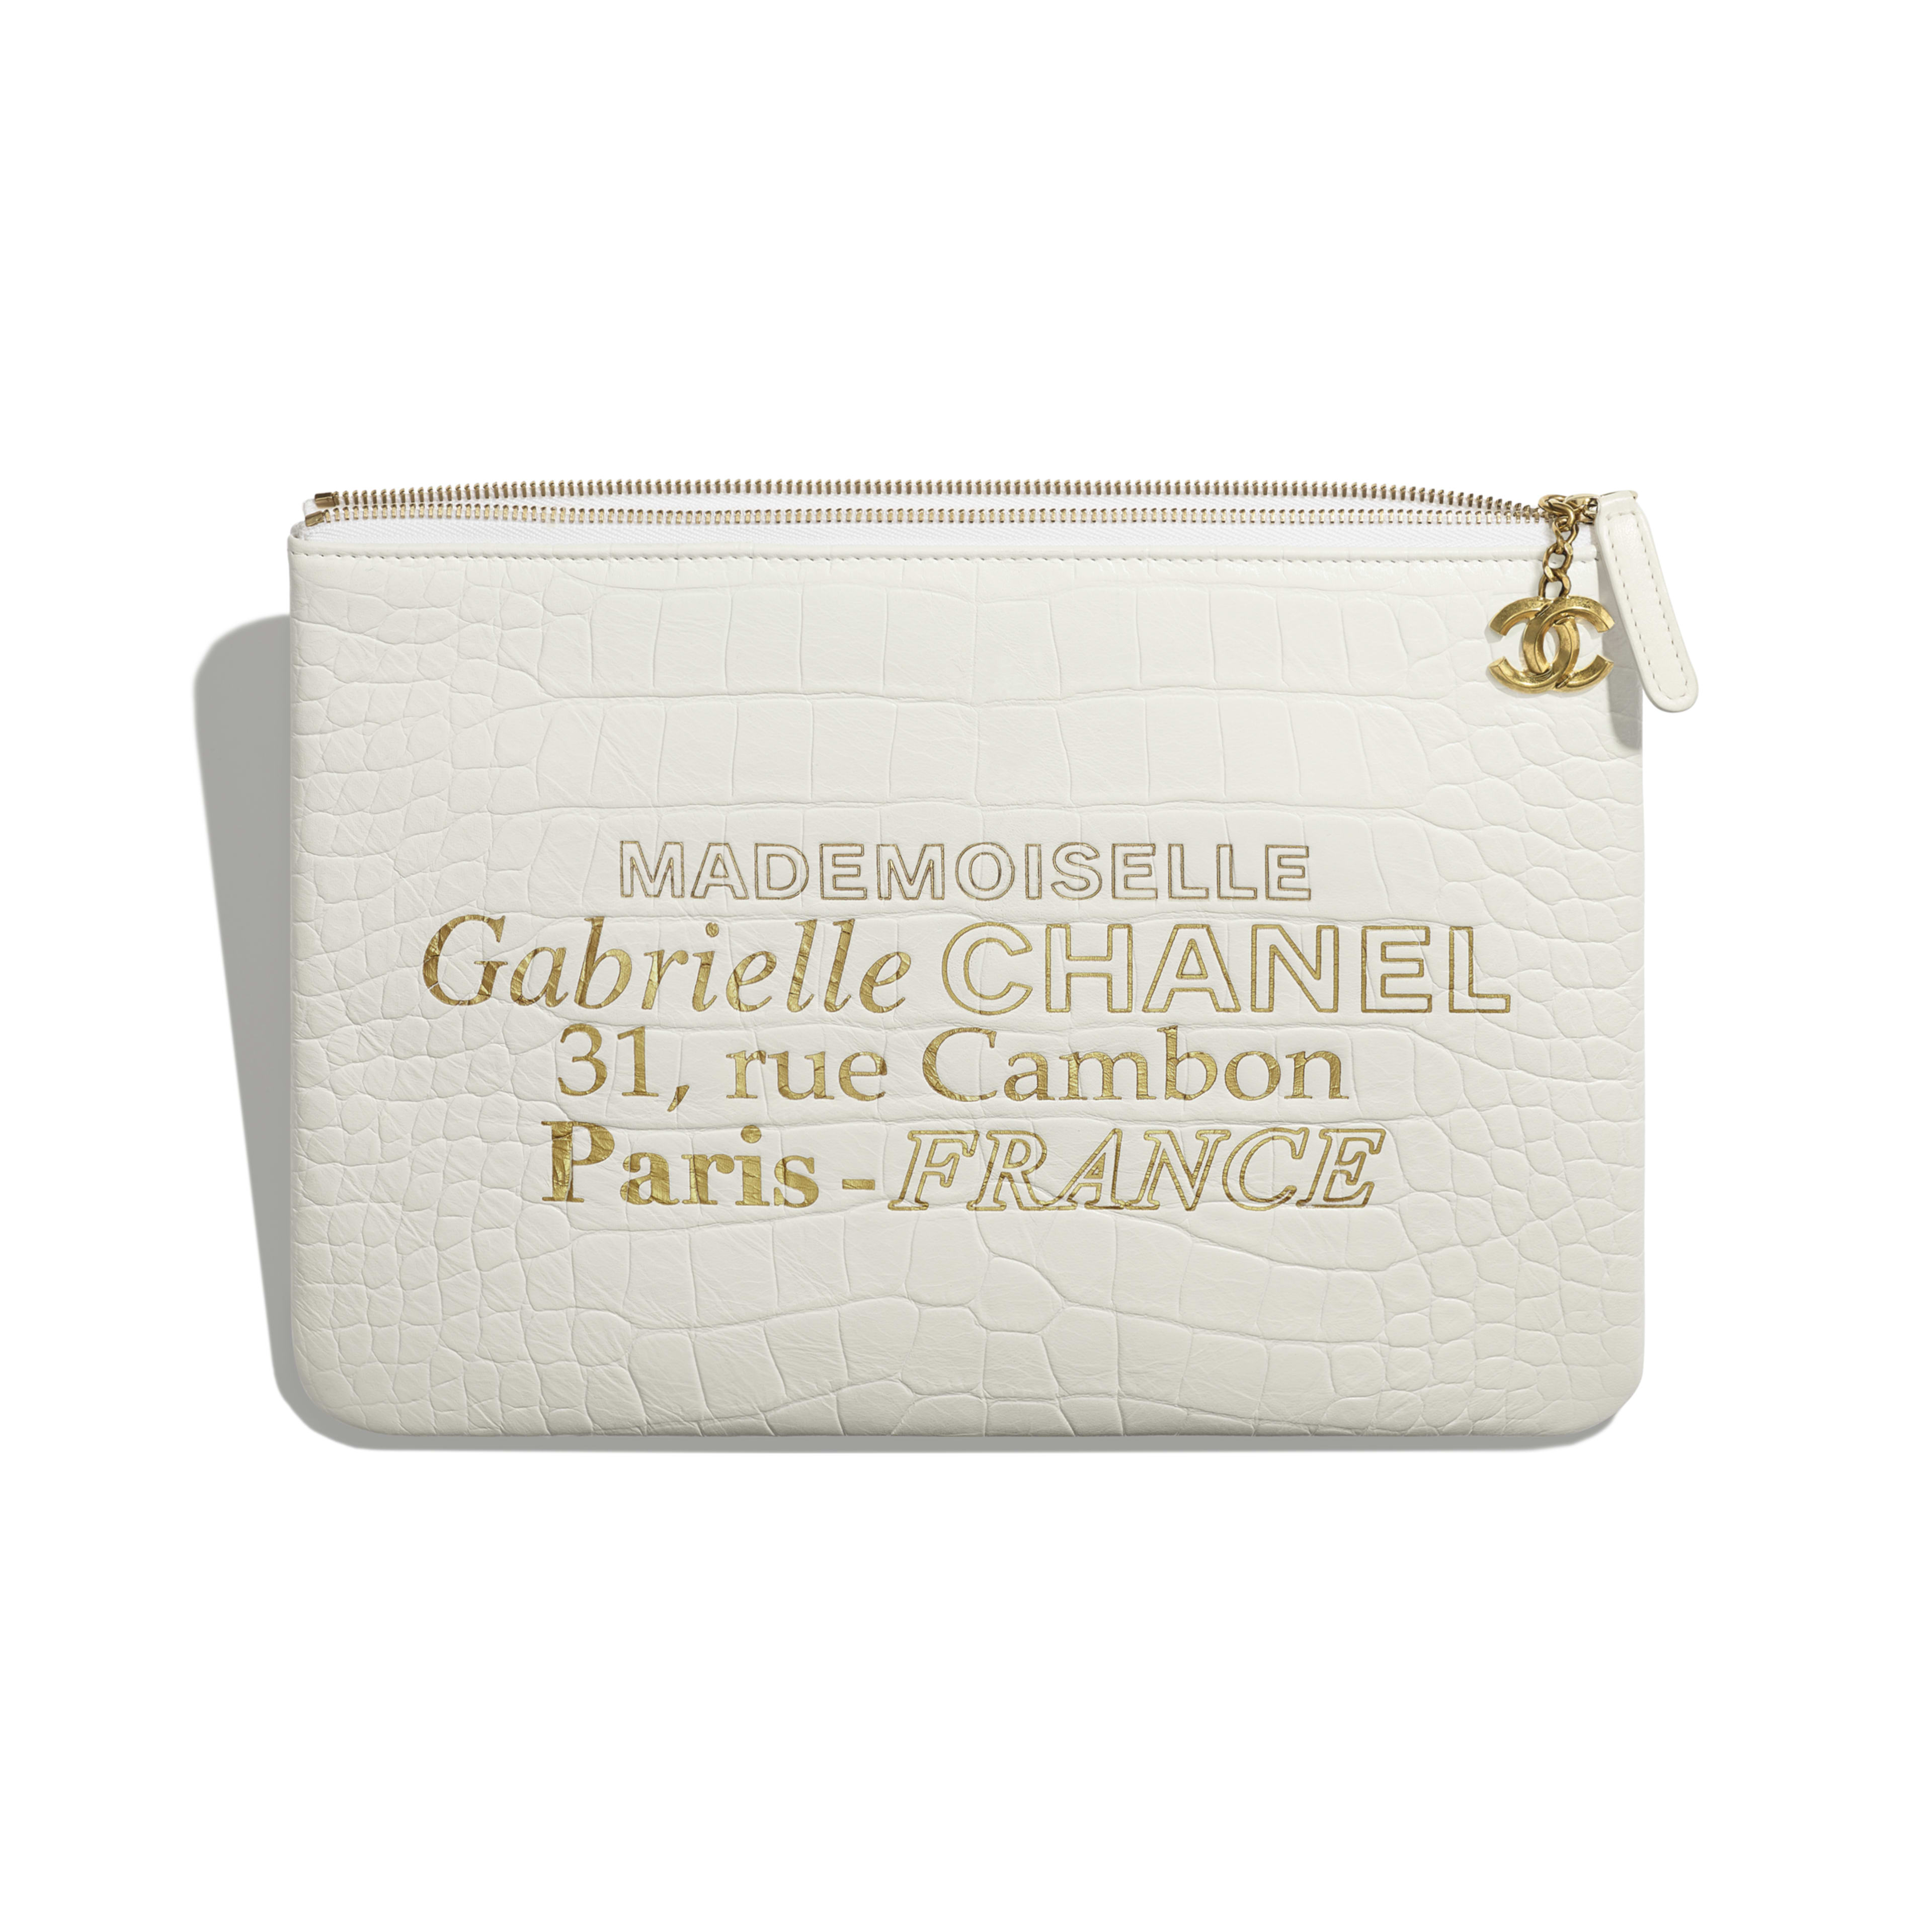 Pouch - White & Gold - Crocodile Embossed Calfskin & Gold-Tone Metal - Other view - see full sized version